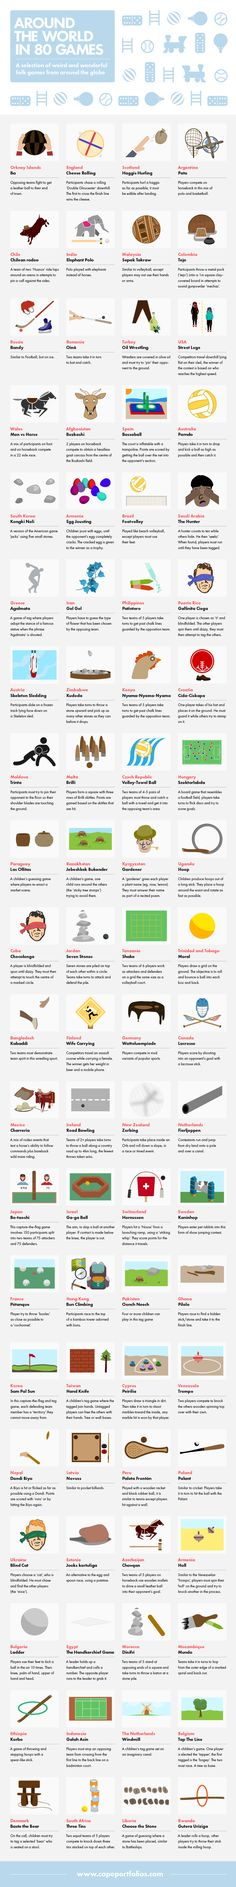 Everyone loves a good game, but what we play is very much dependent on our location and our culture. This infographic chronicles all the weird and wonderful games played around the world. How many have you played?